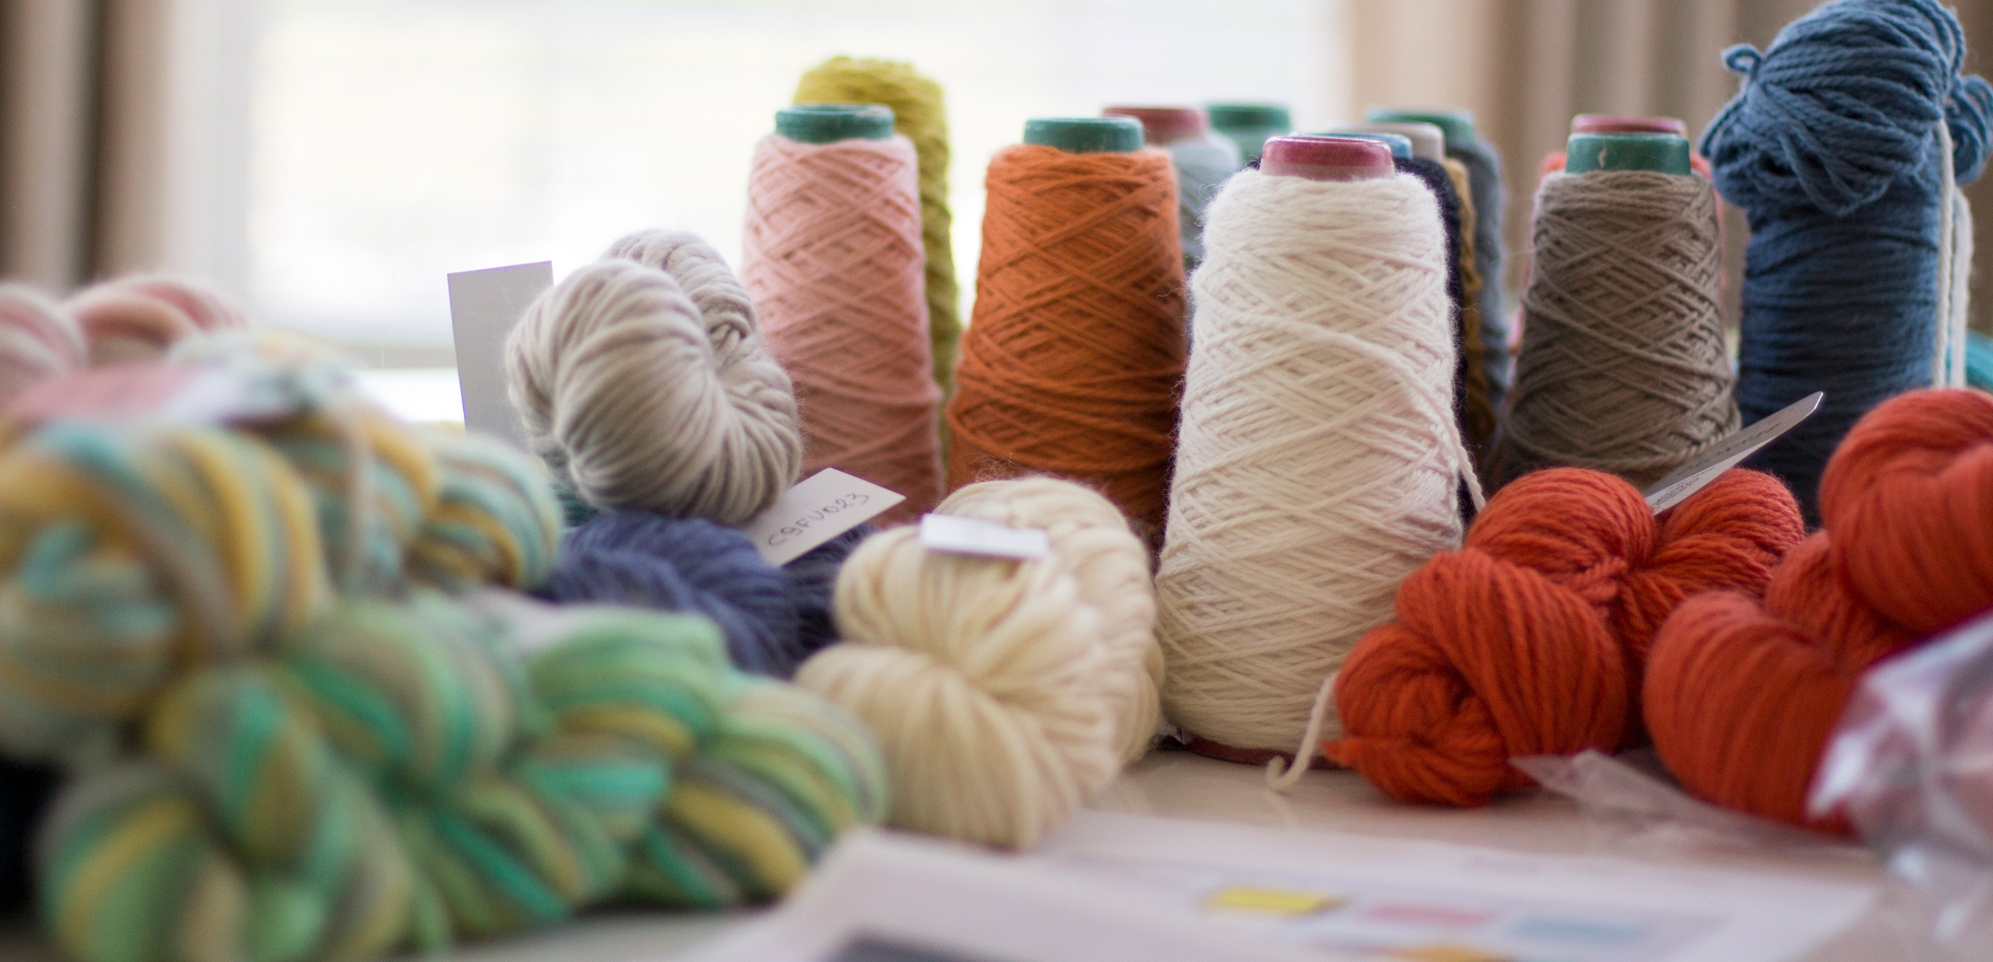 Our yarn shop is now open - Click here to see what's in store!